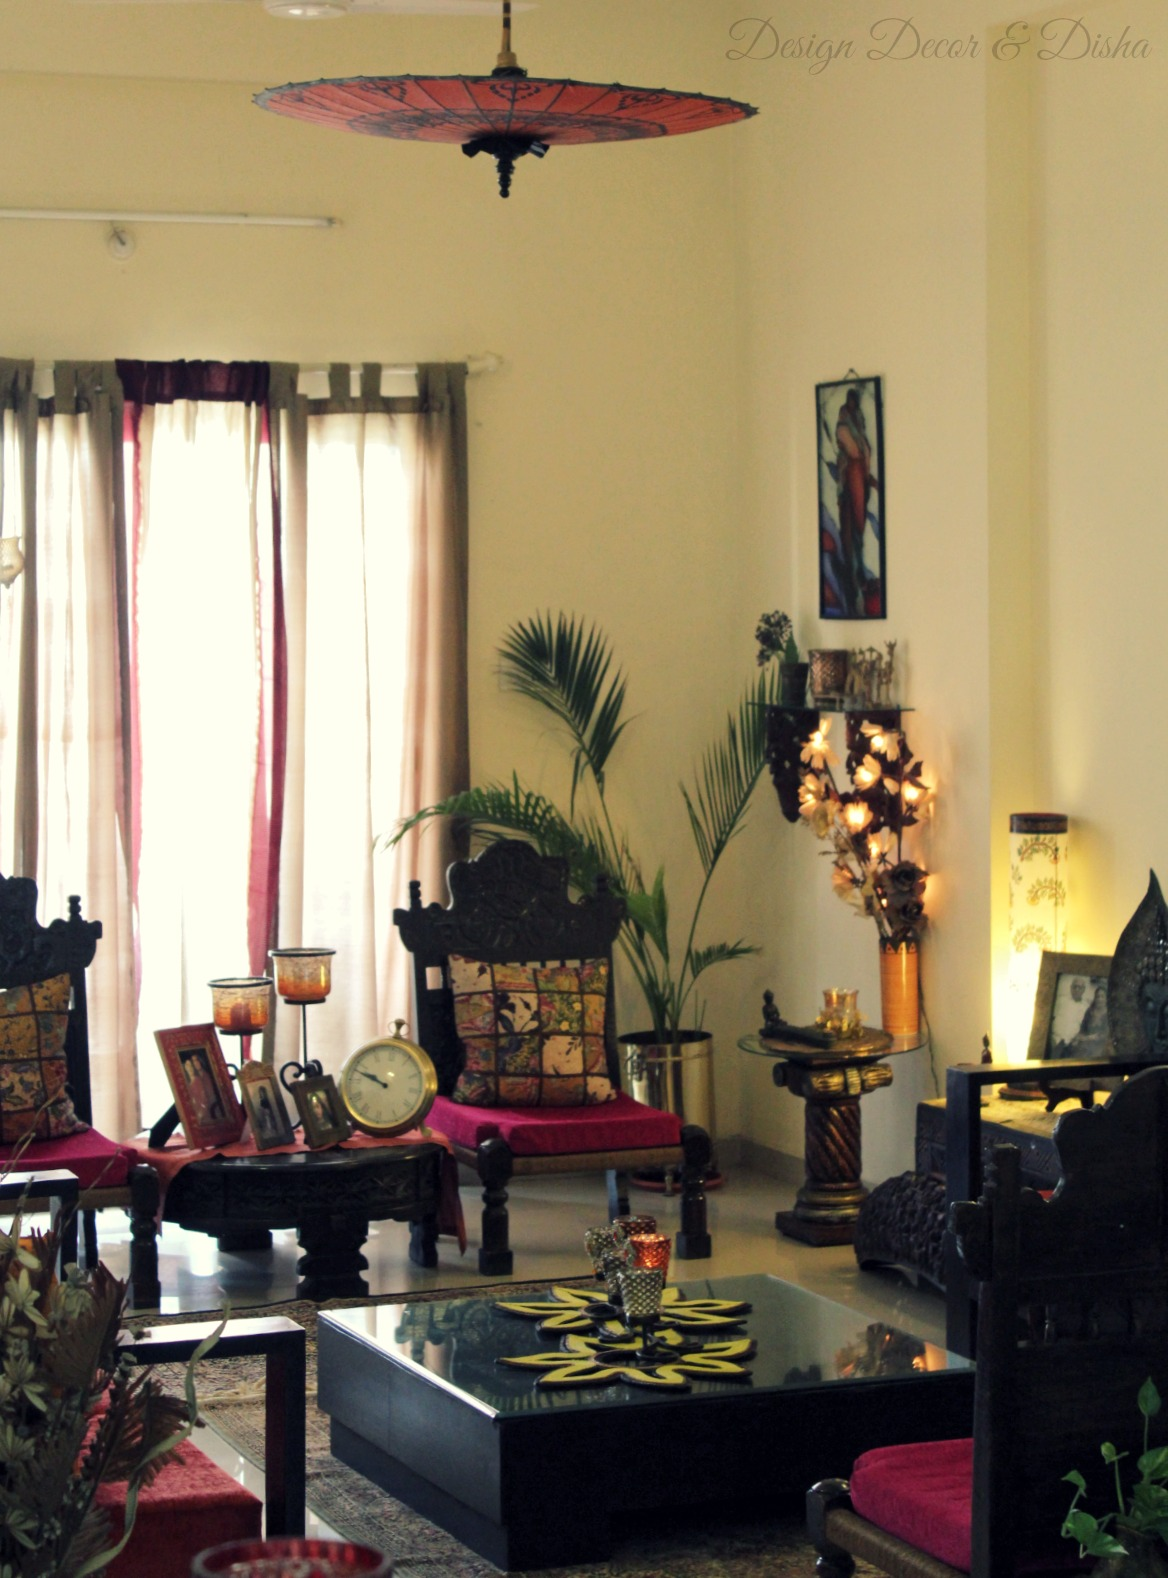 Design Decor Disha Home Tour Kapila Banerjee